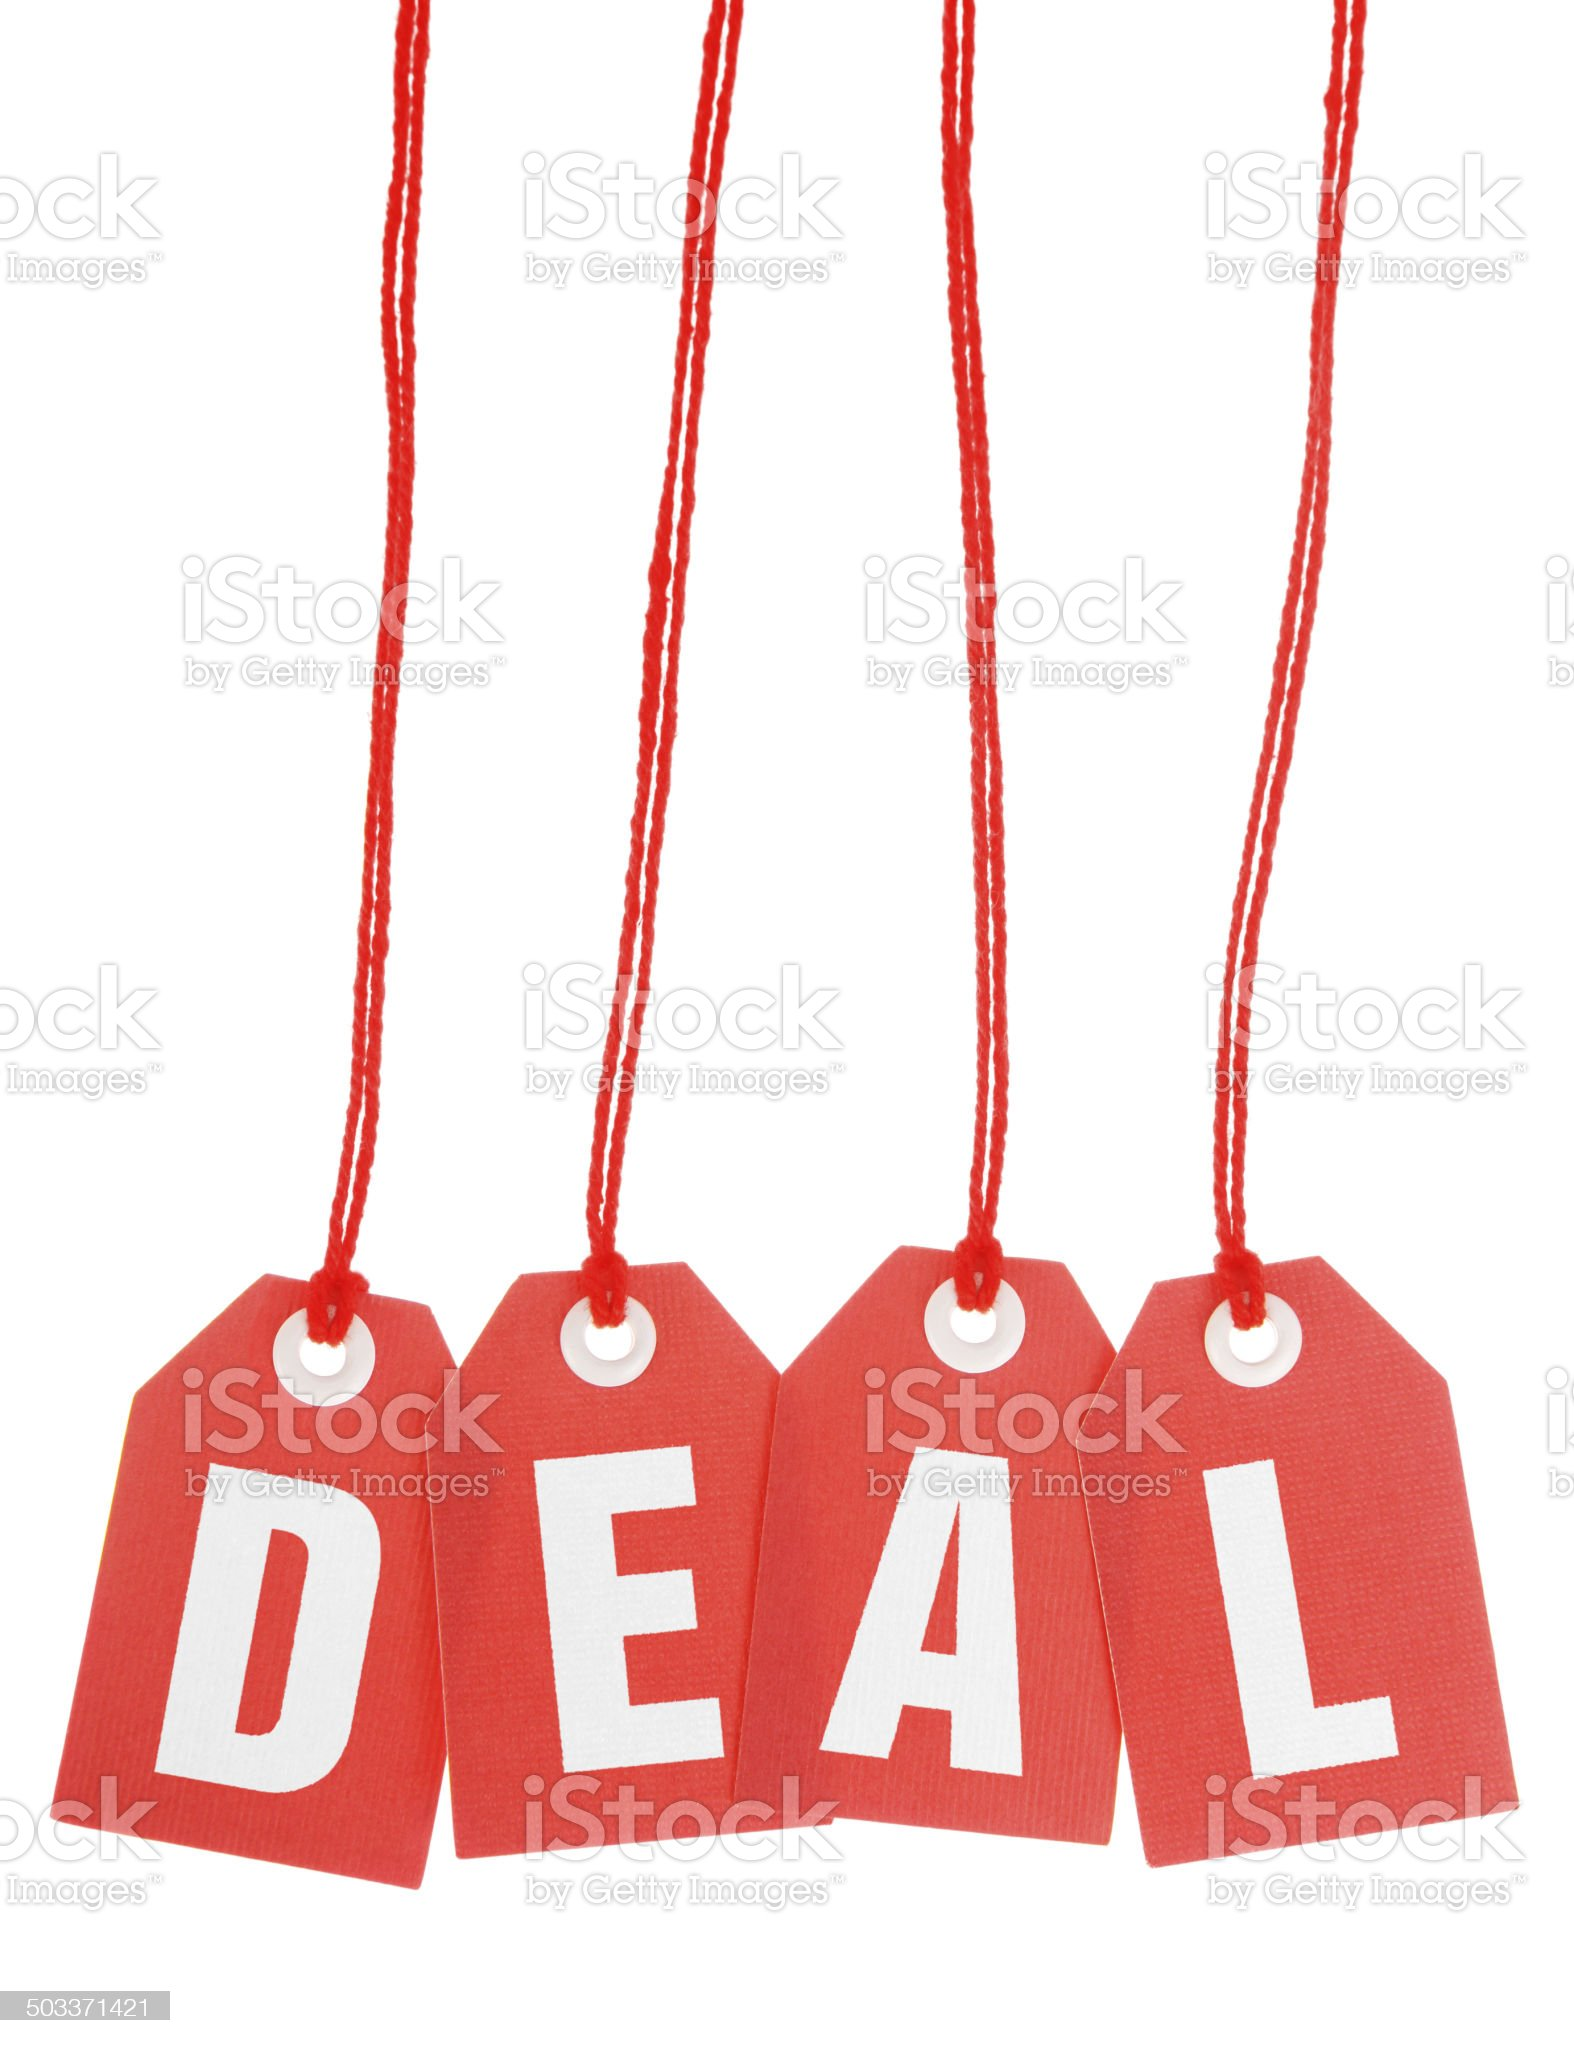 Deal - Stock Image of Isolated Red Hanging Tags royalty-free stock photo